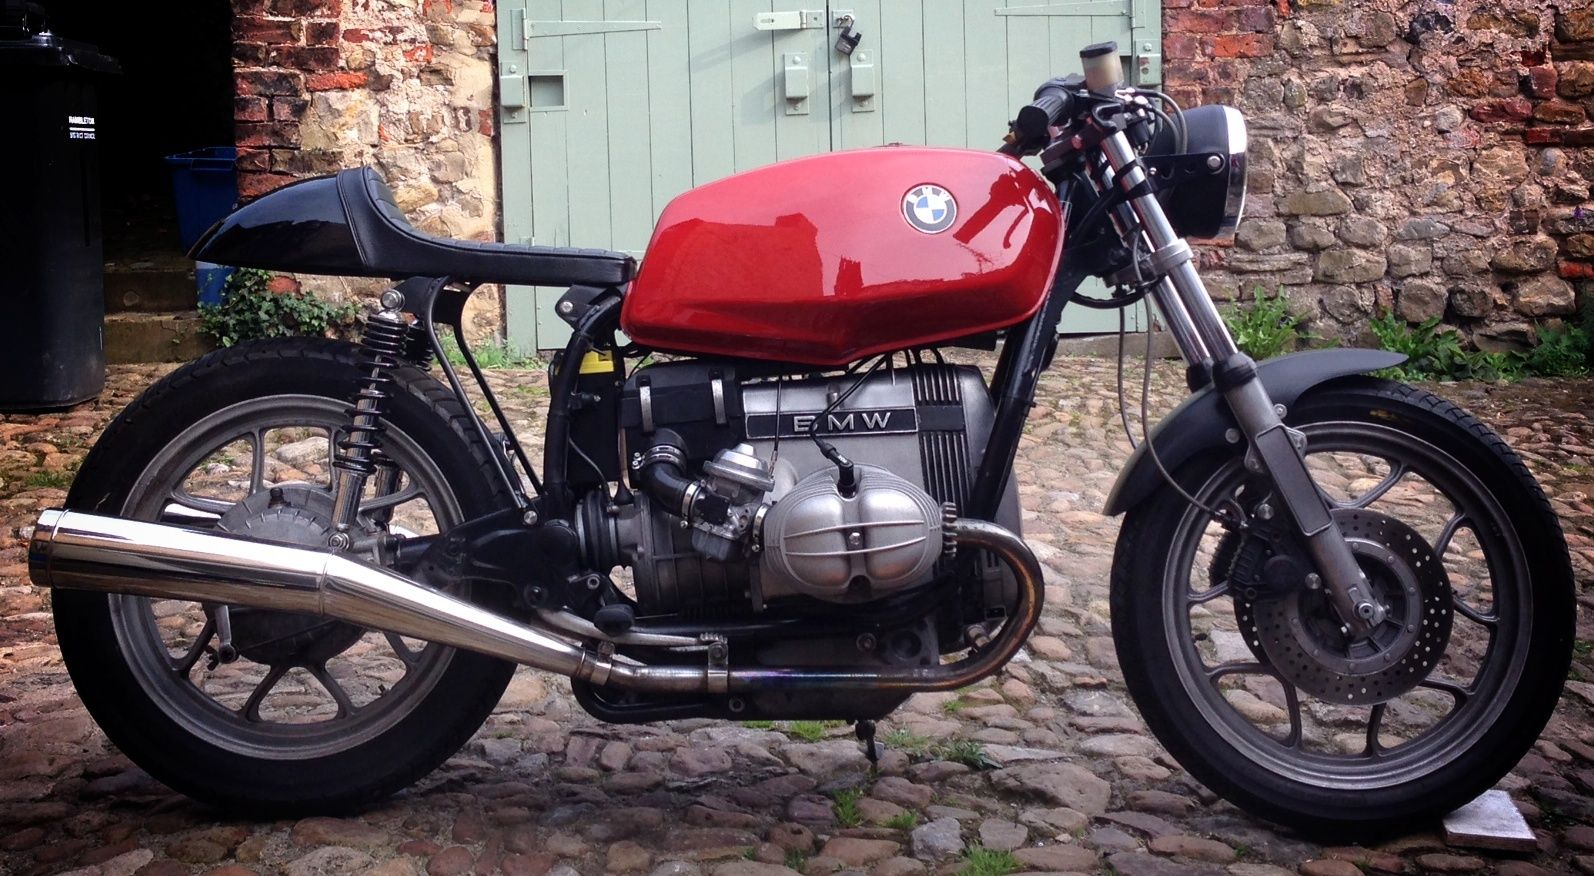 BMW R65LS Cafe Racer